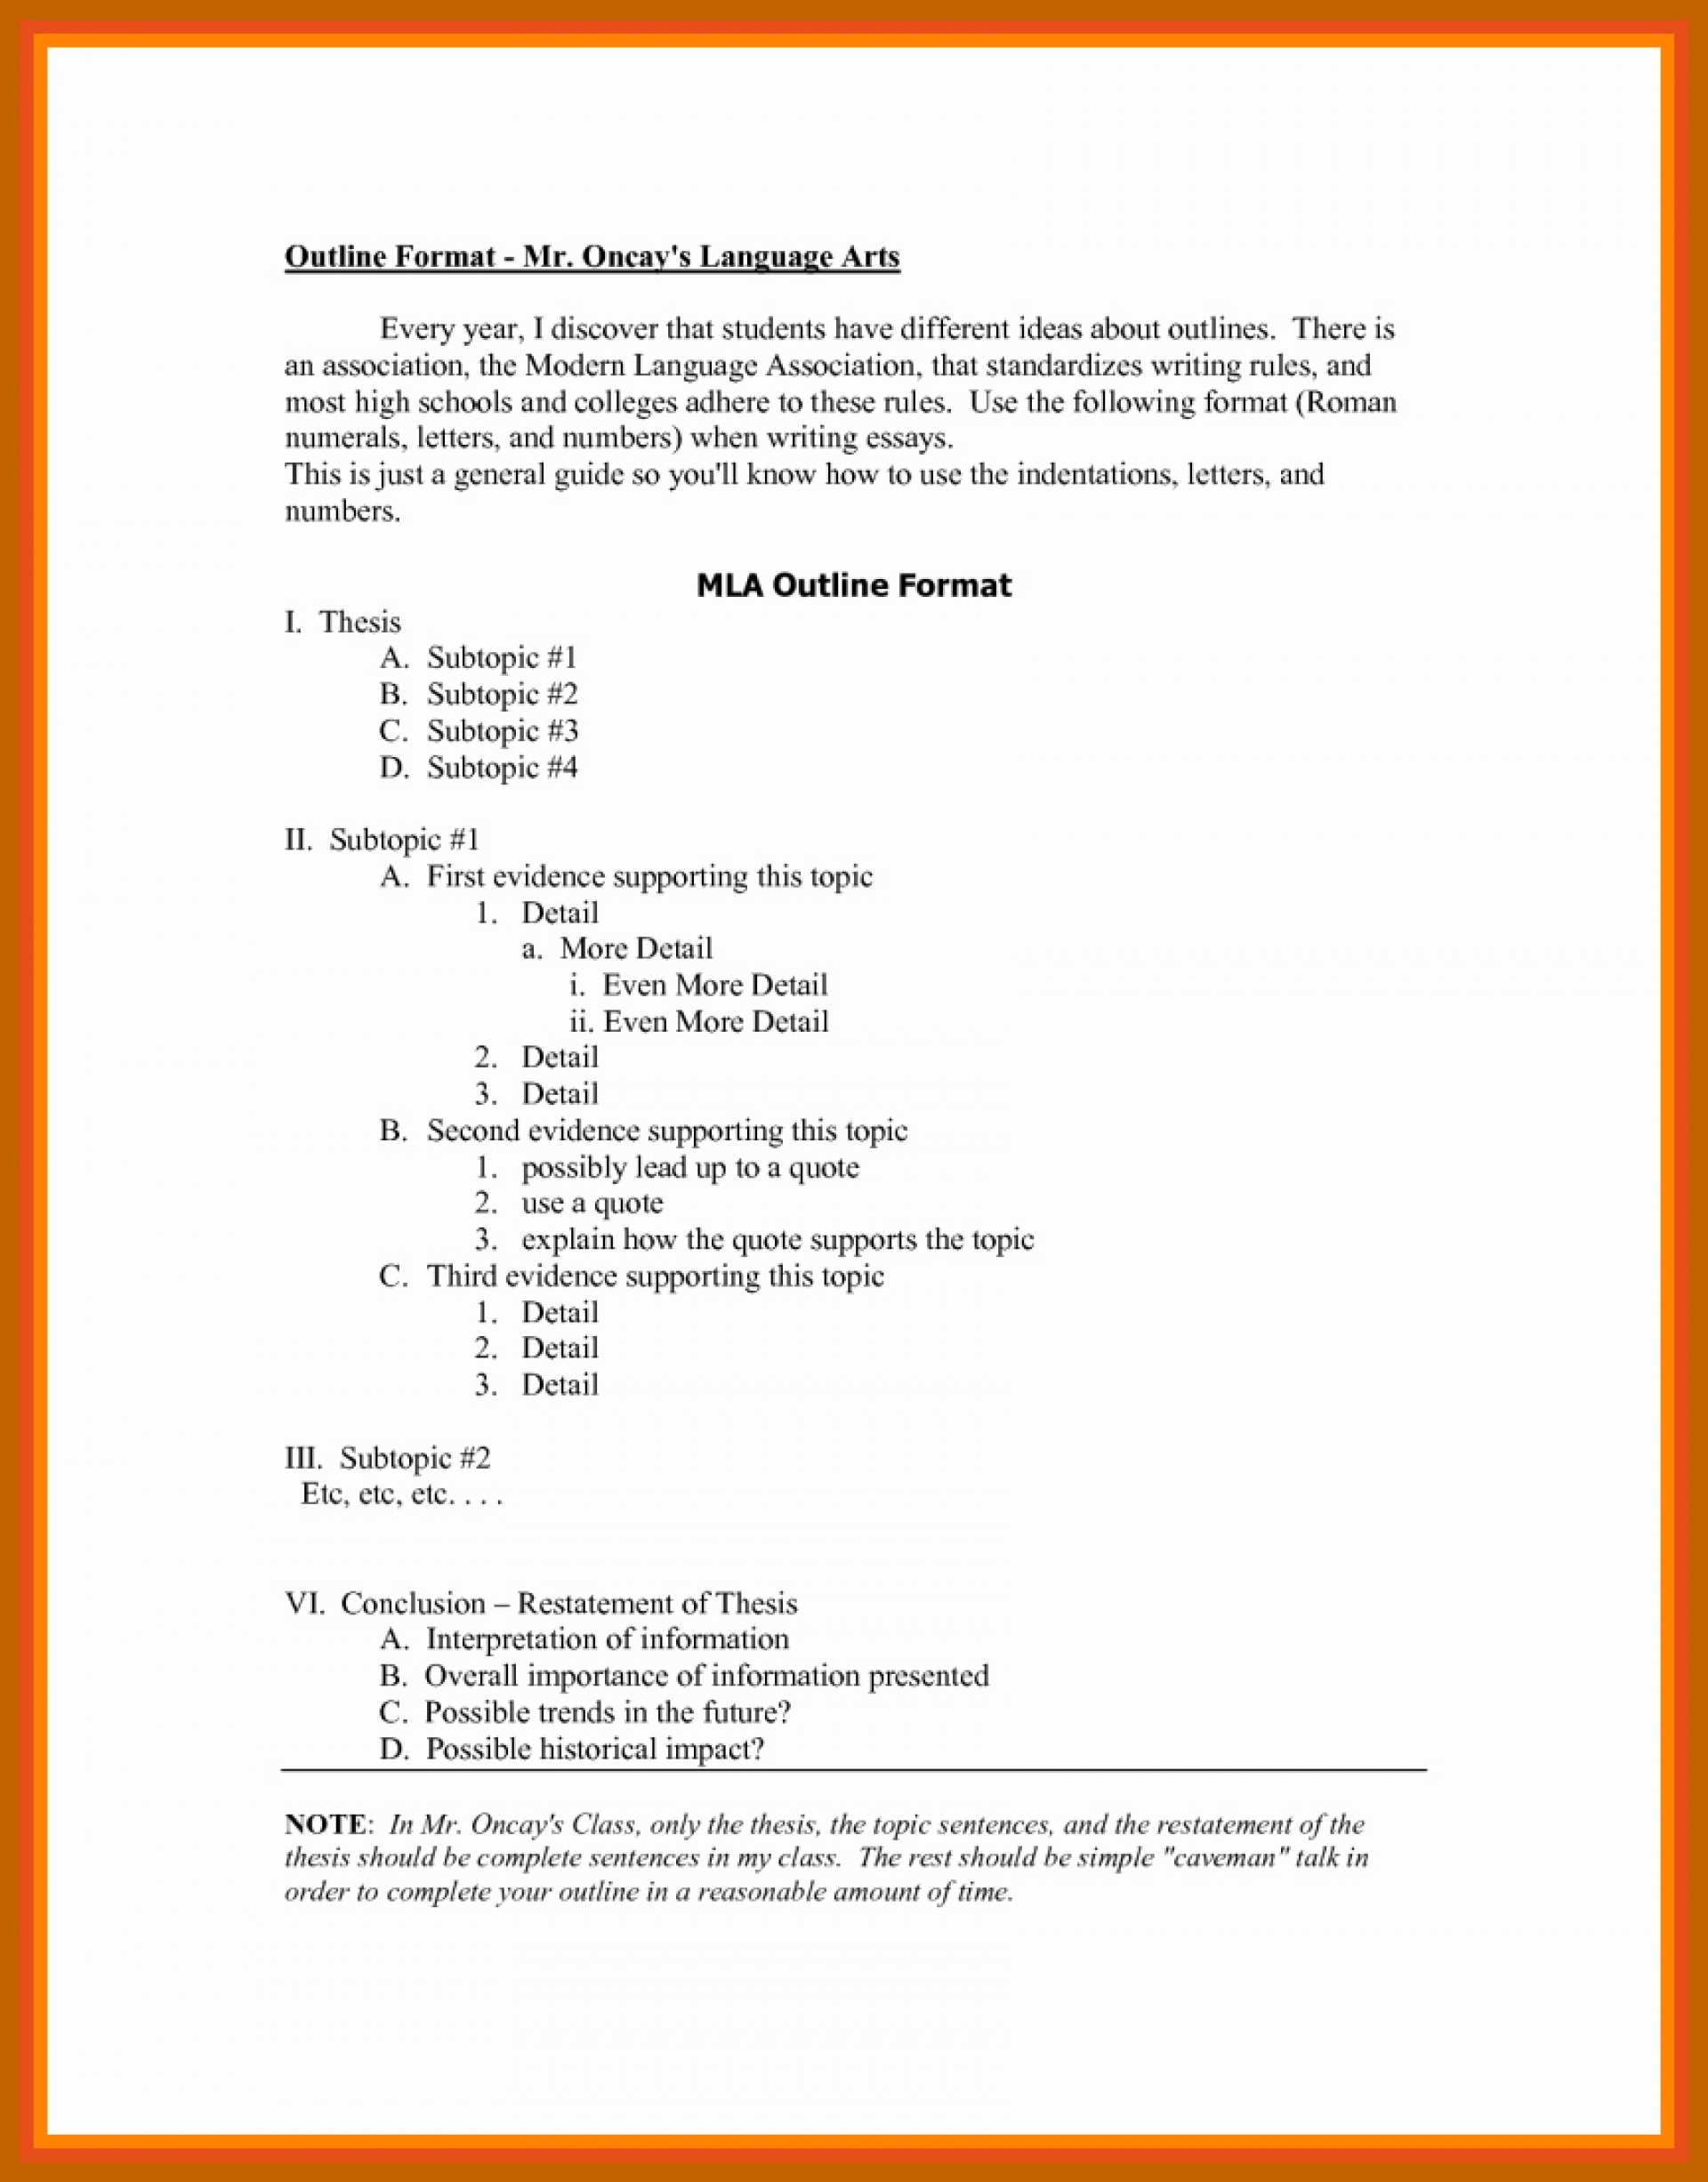 006 Mla Style Research Paper Format Best Of Outline In How To Fantastic A 1920